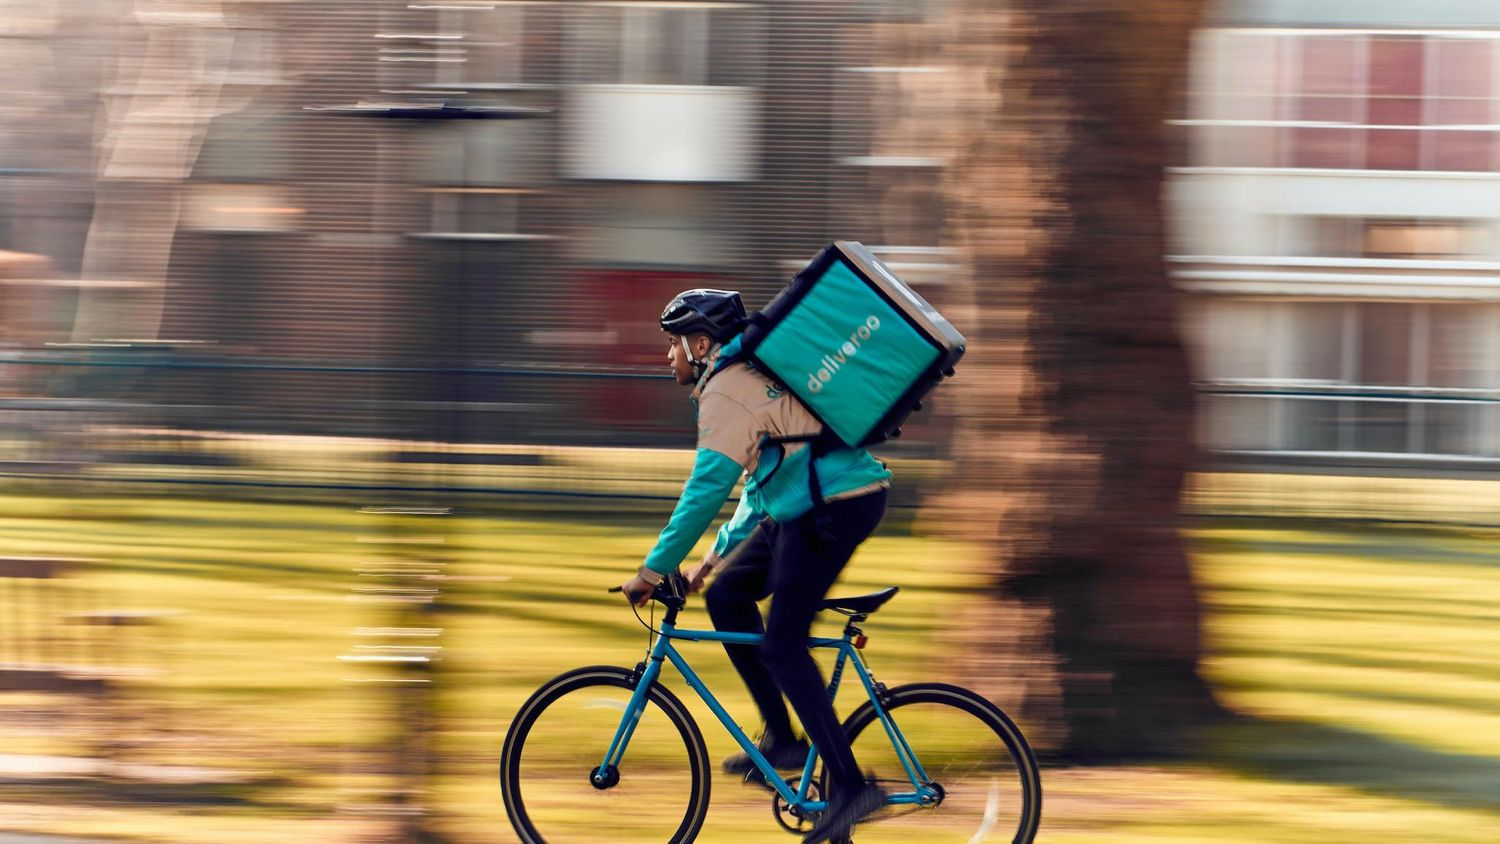 Amazon-Deliveroo deal approved as COVID-19 eats into profits